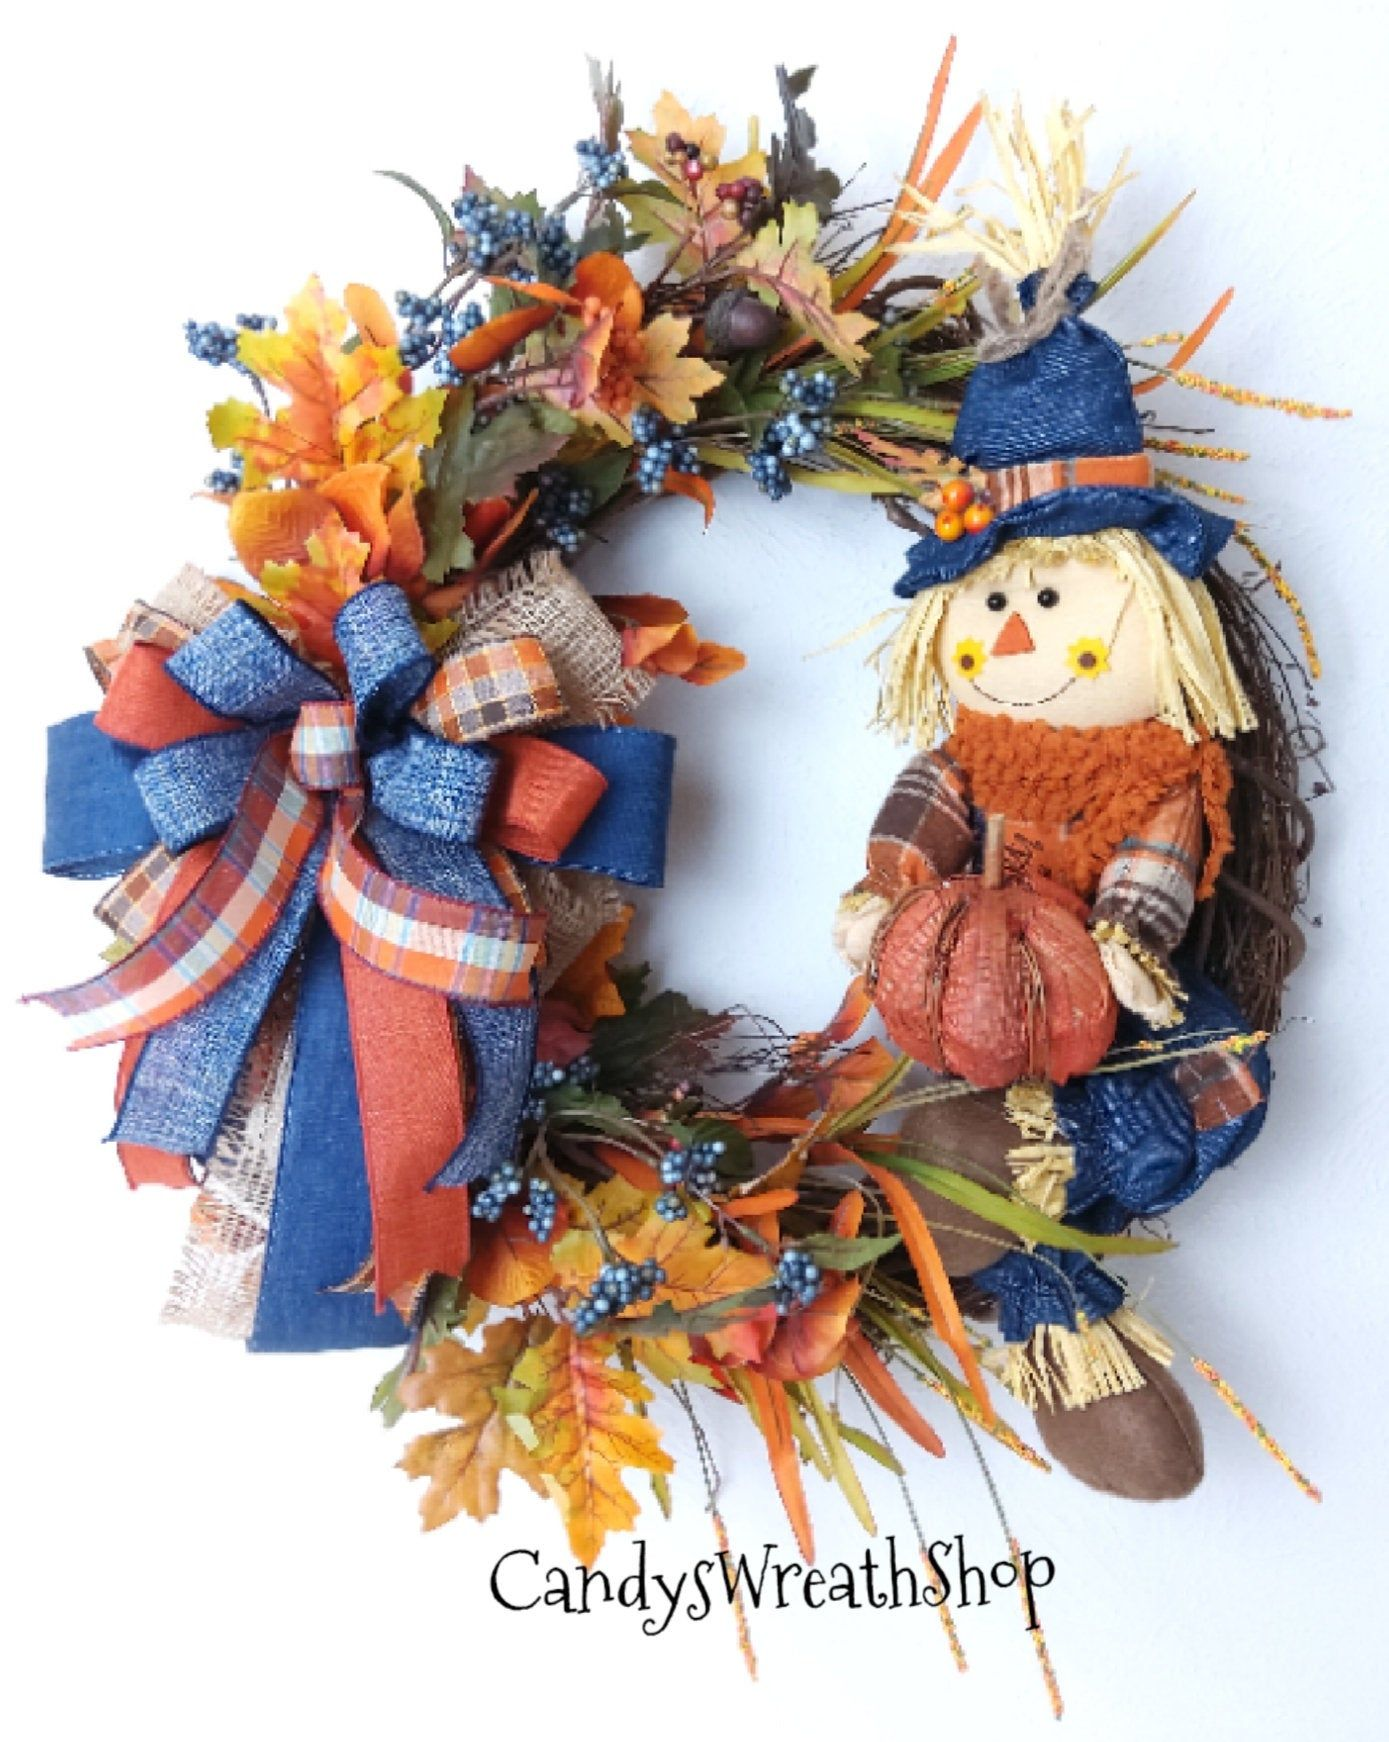 Fall Scarecrow Wreath, Scarecrow Grapevine, Autumn Wreath, Harvest Wreath, Scarecrow Wreath, Fall Decor, Grapevine Wreath, Fall Wreath, Fall #scarecrowwreath